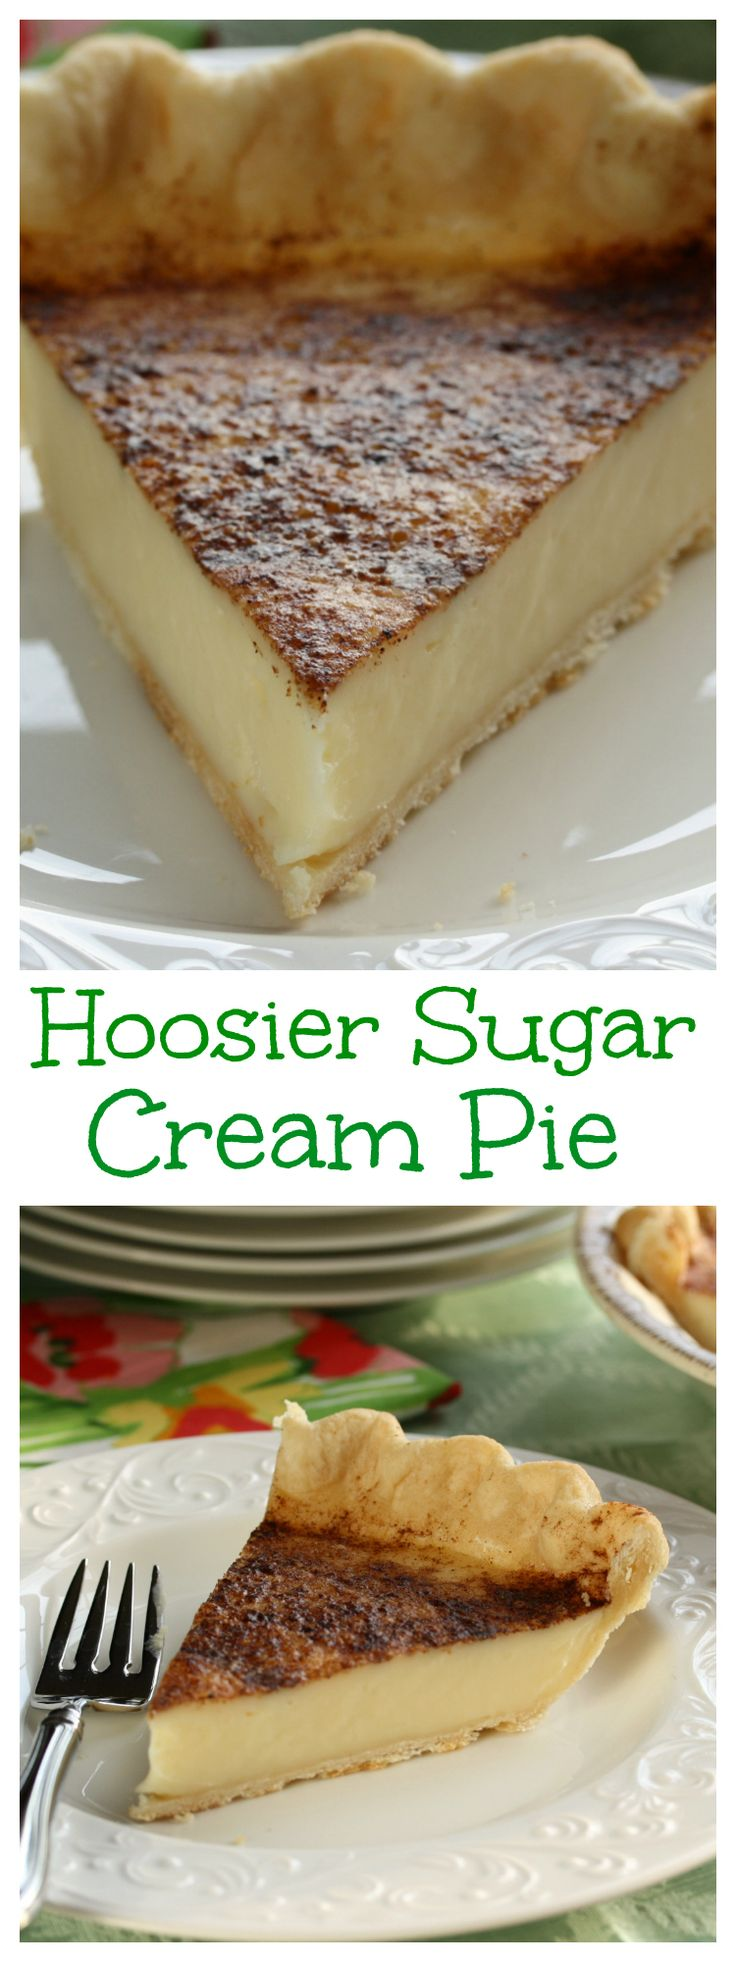 ... images about Pie on Pinterest | Cream pies, Apple rose tart and Pies